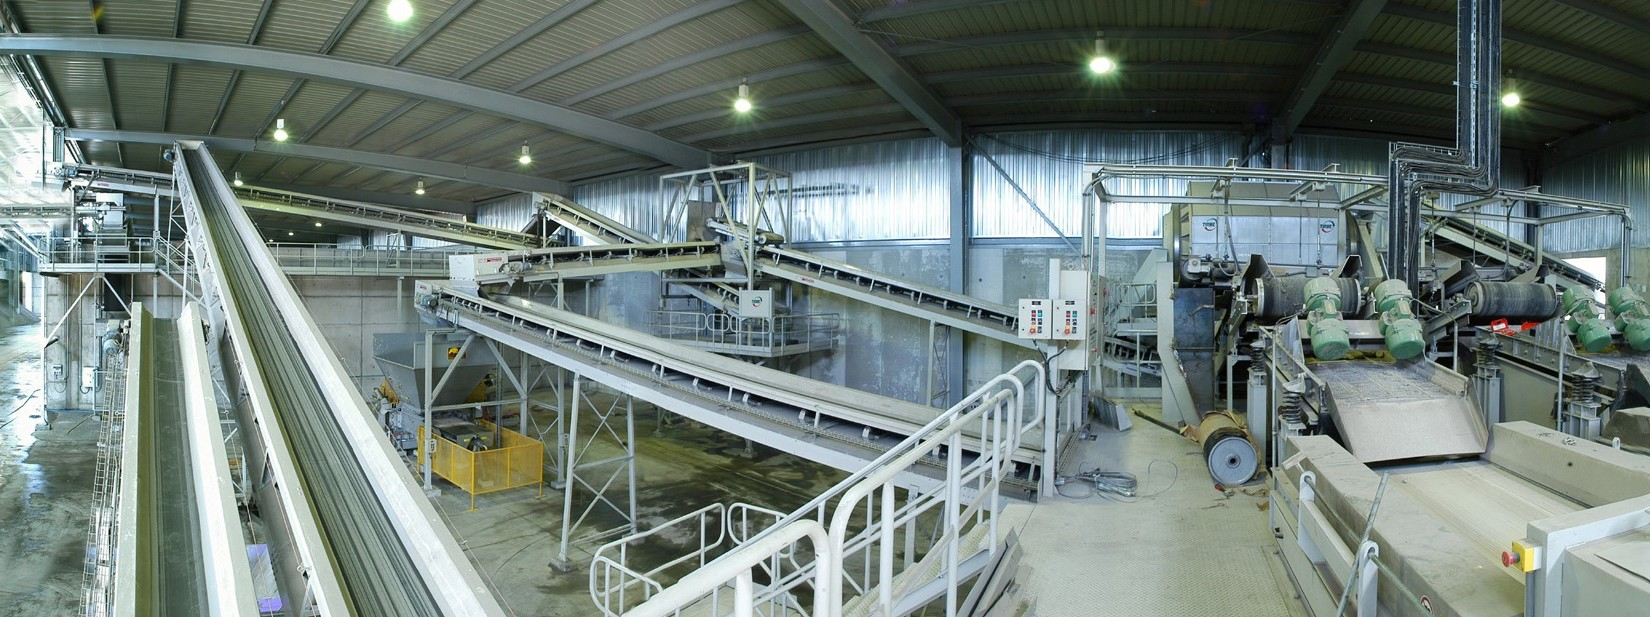 energy from waste facility recycling conveyor belts